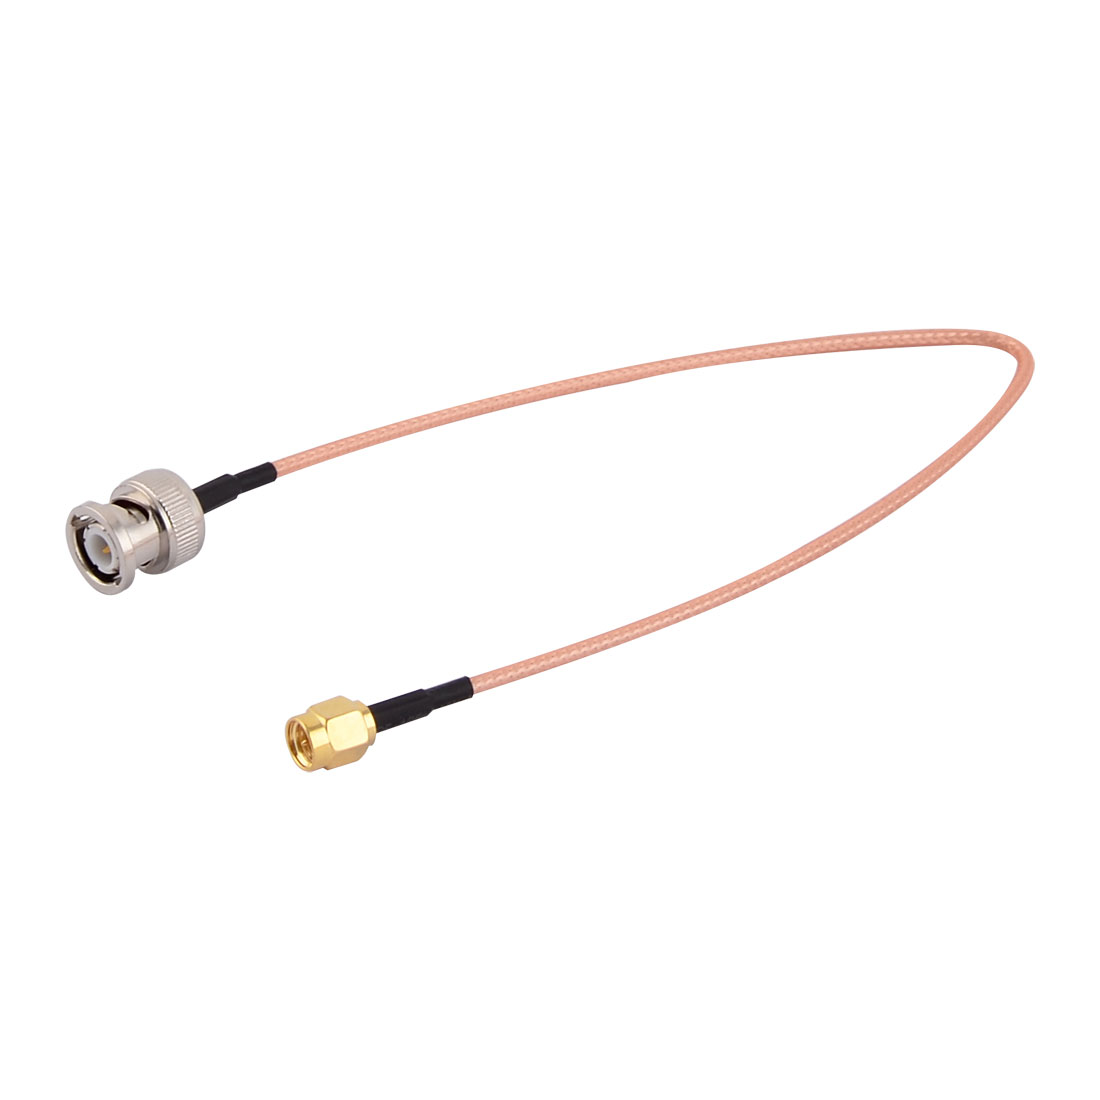 "11"" Length BNC Male to SMA Male M/M Connector Pigtail Cable"